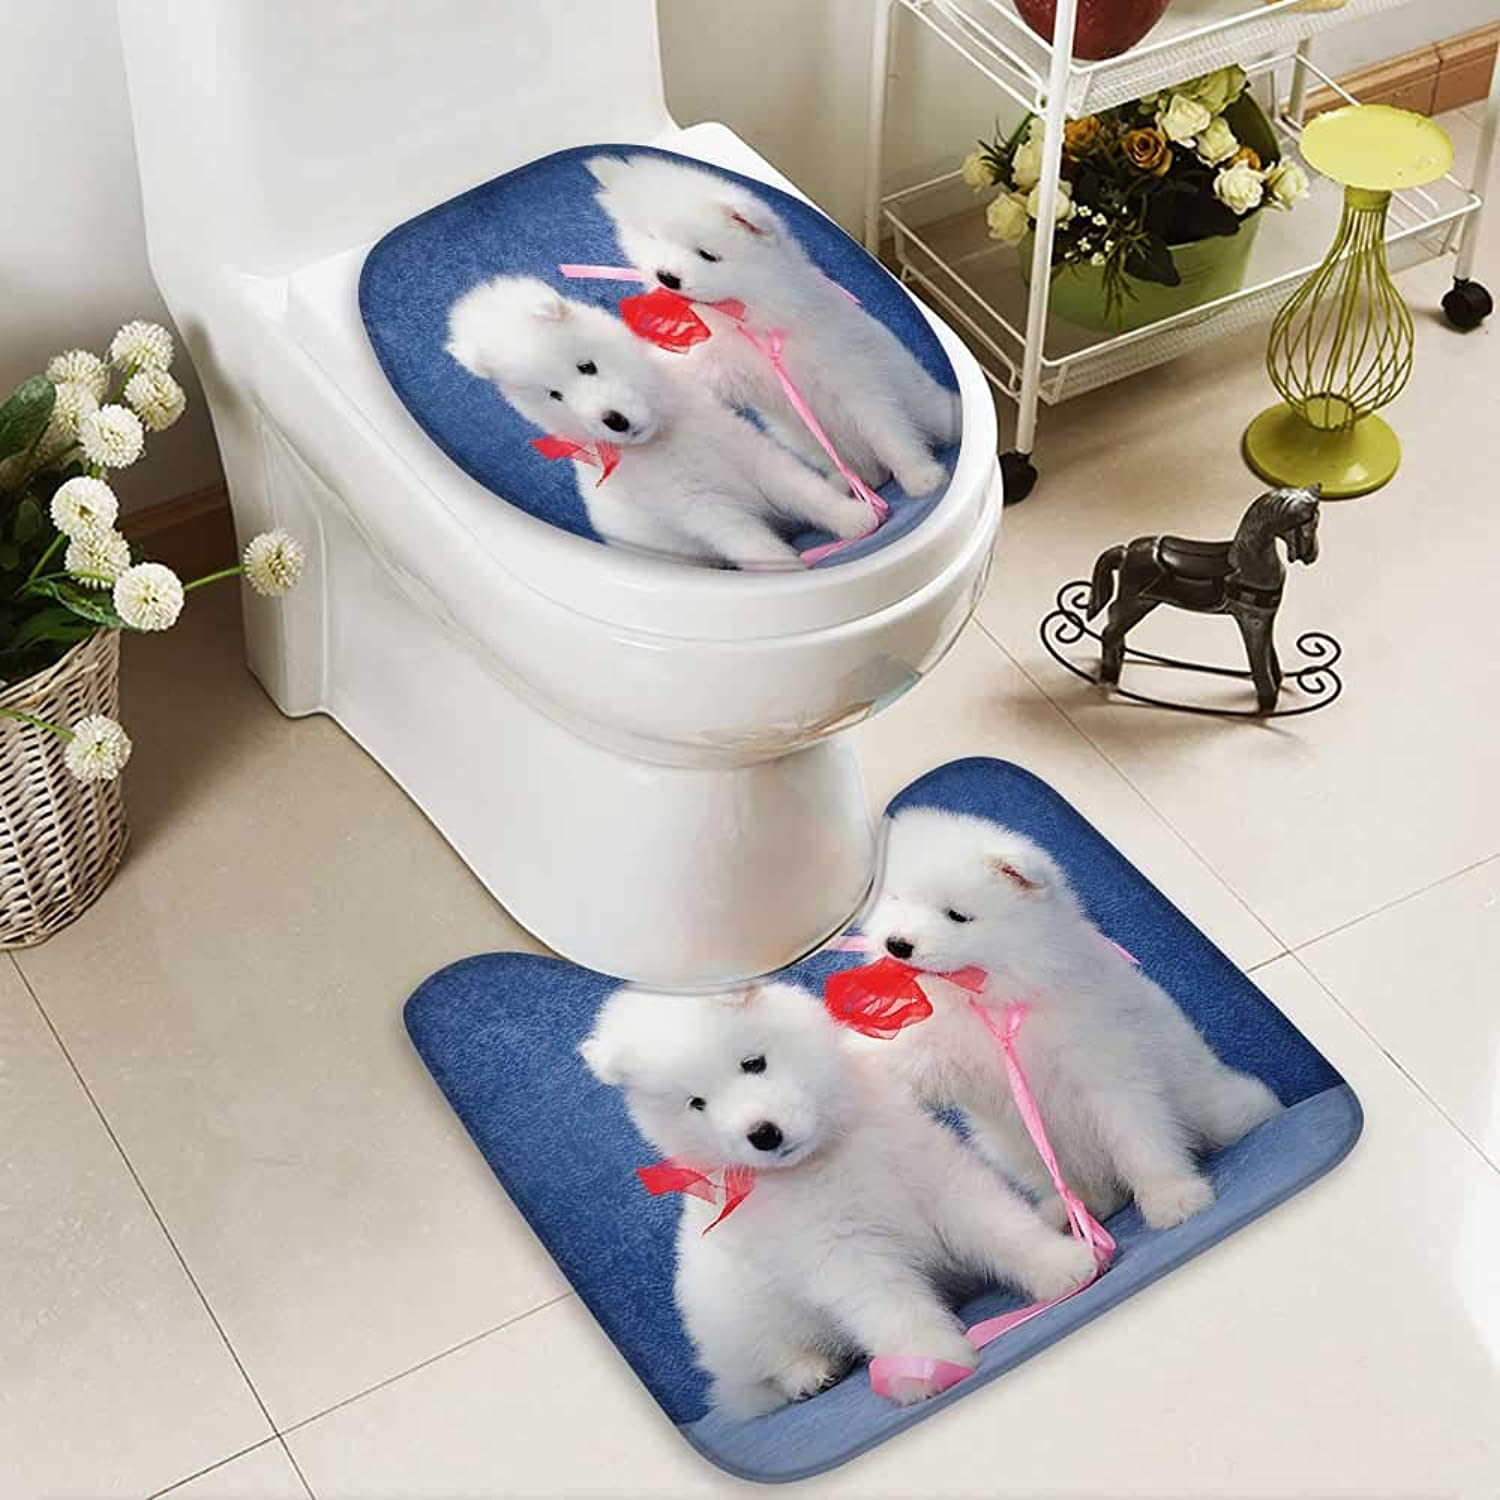 Aolankaili Cushion NonSlip Toilet Mat Cute Puppies Samoyed Dog Playing Each Other's Ribbons Soft NonSlip Water